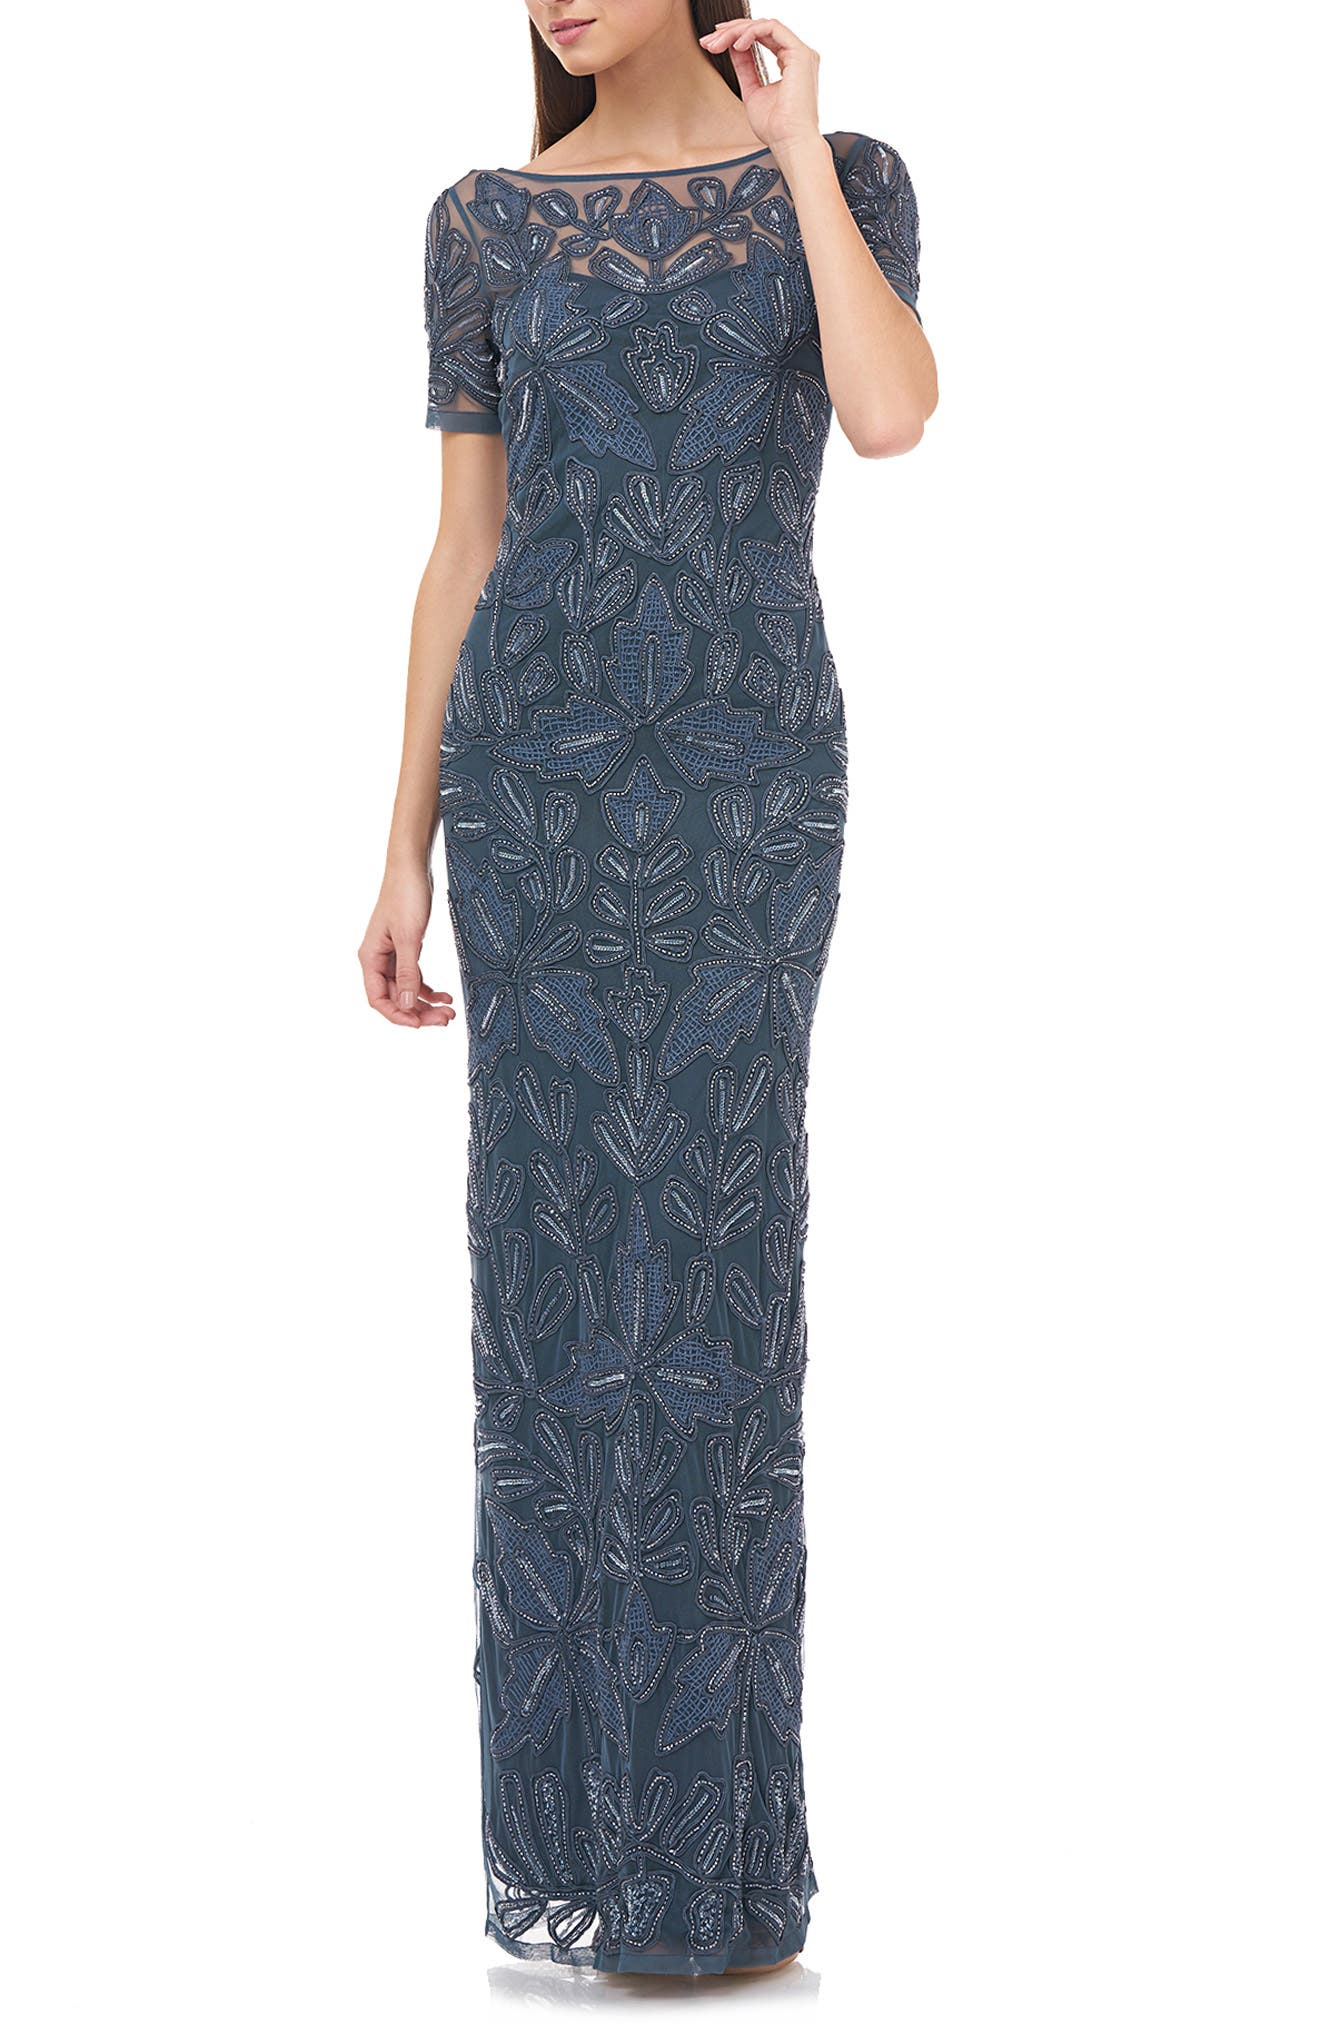 1920s Evening Dresses & Formal Gowns Womens Js Collections Beaded Soutache Evening Dress Size 4 - Blue $368.00 AT vintagedancer.com